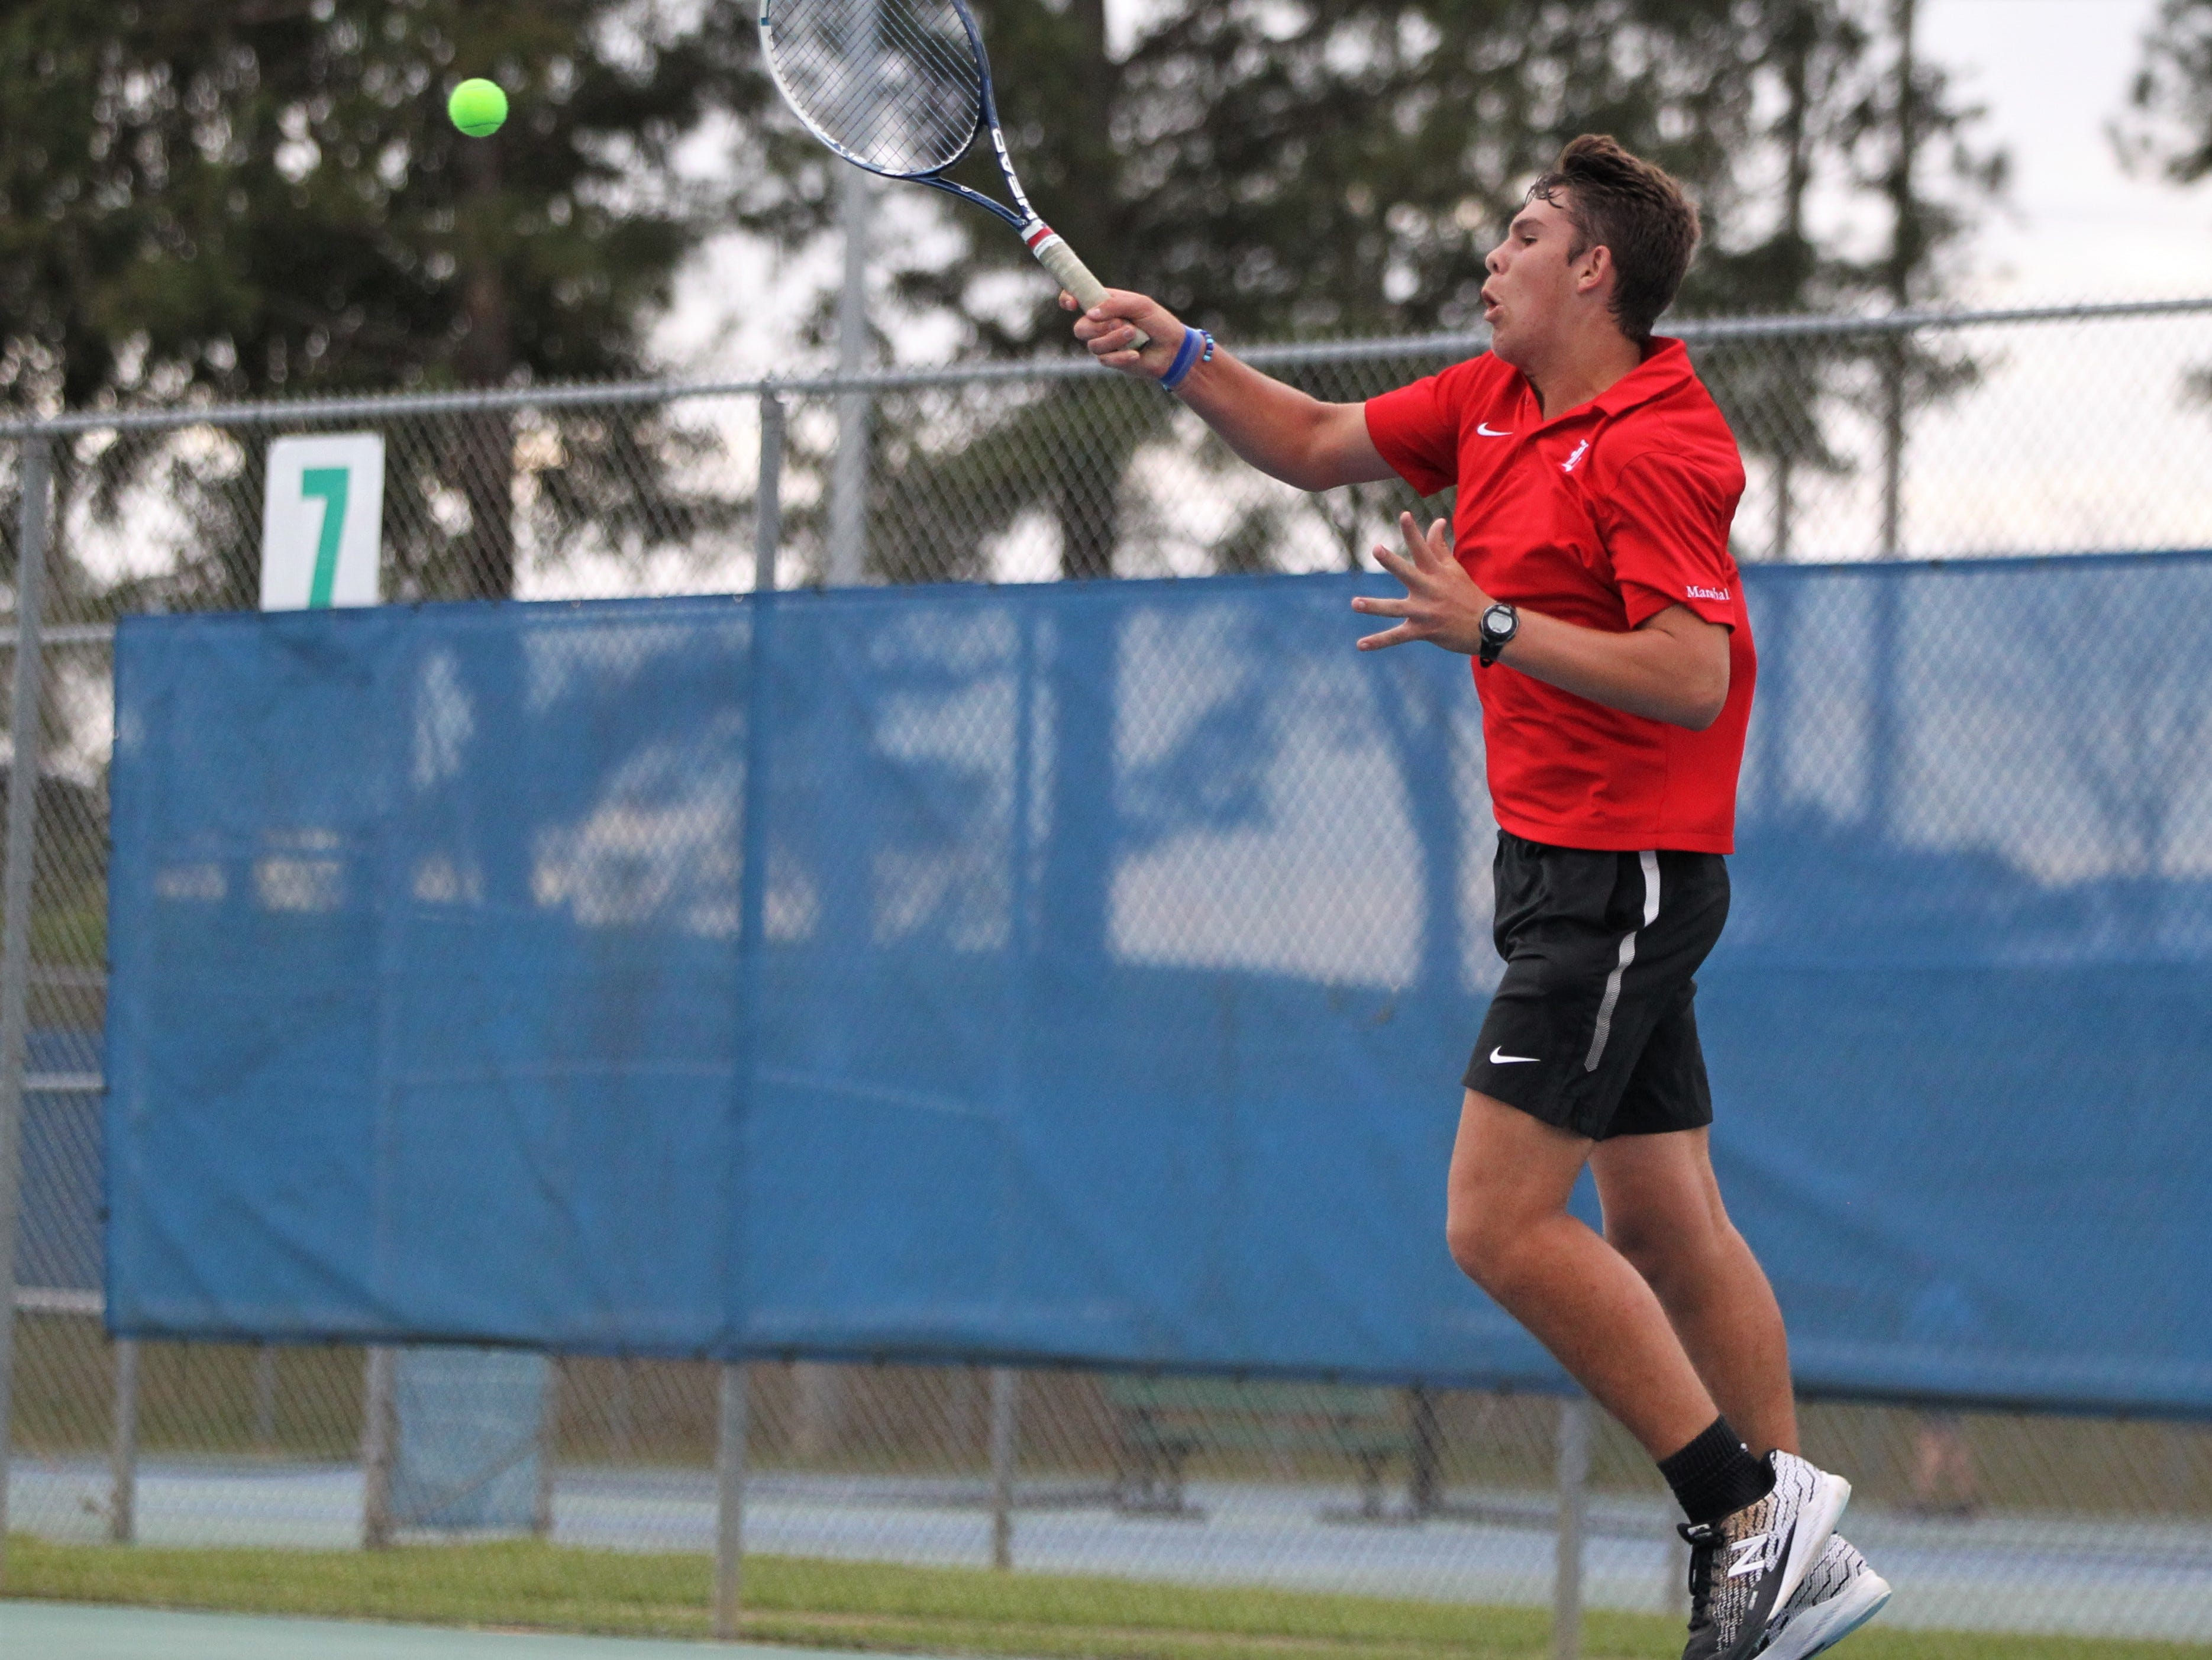 Leon senior Will Bullen hits a forehand plays during the high school boys and girls city tennis tournament at Tom Brown Park on Thursday, March 14, 2019.